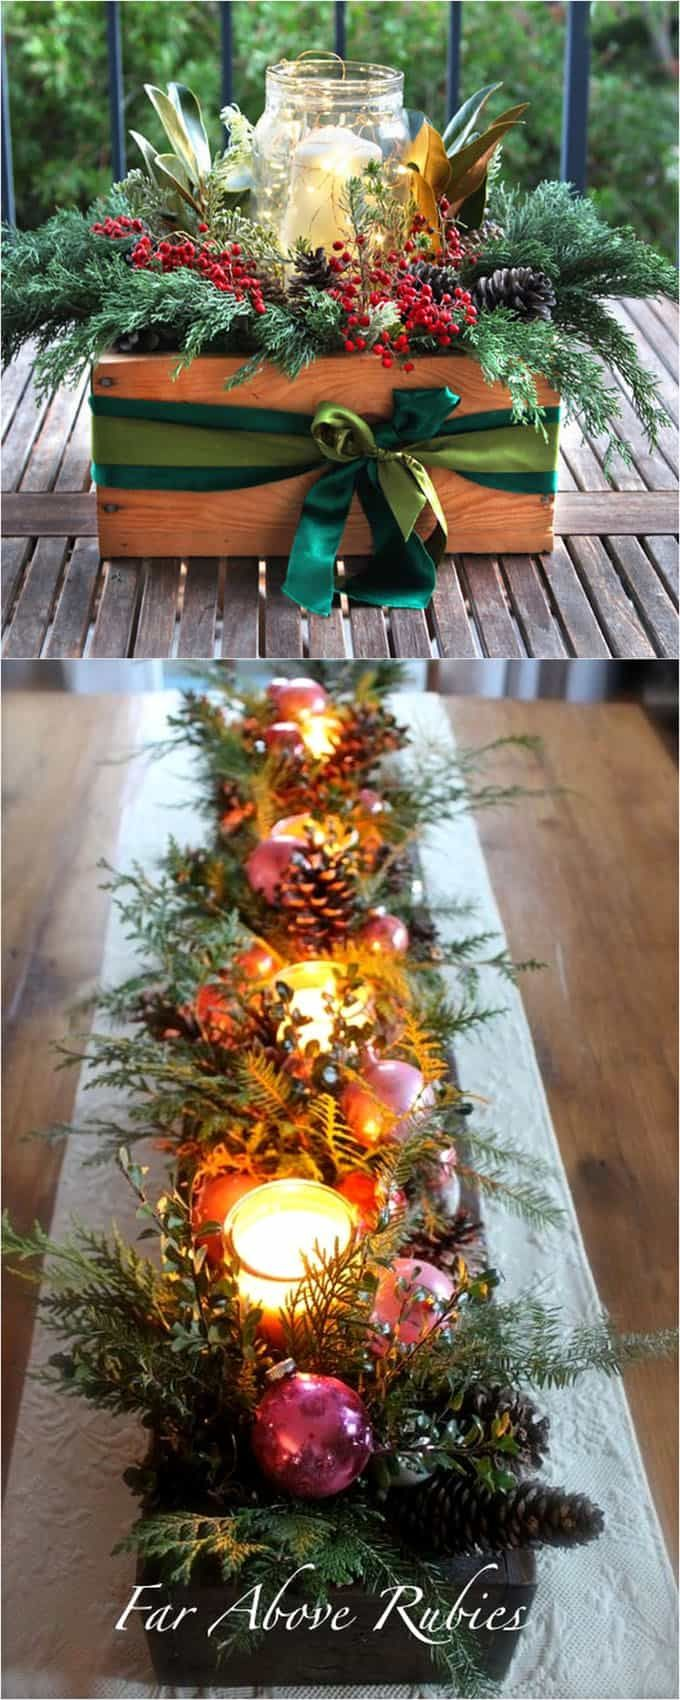 Simple Christmas Decorating Ideas: 27 Gorgeous DIY Thanksgiving & Christmas Table Decorations